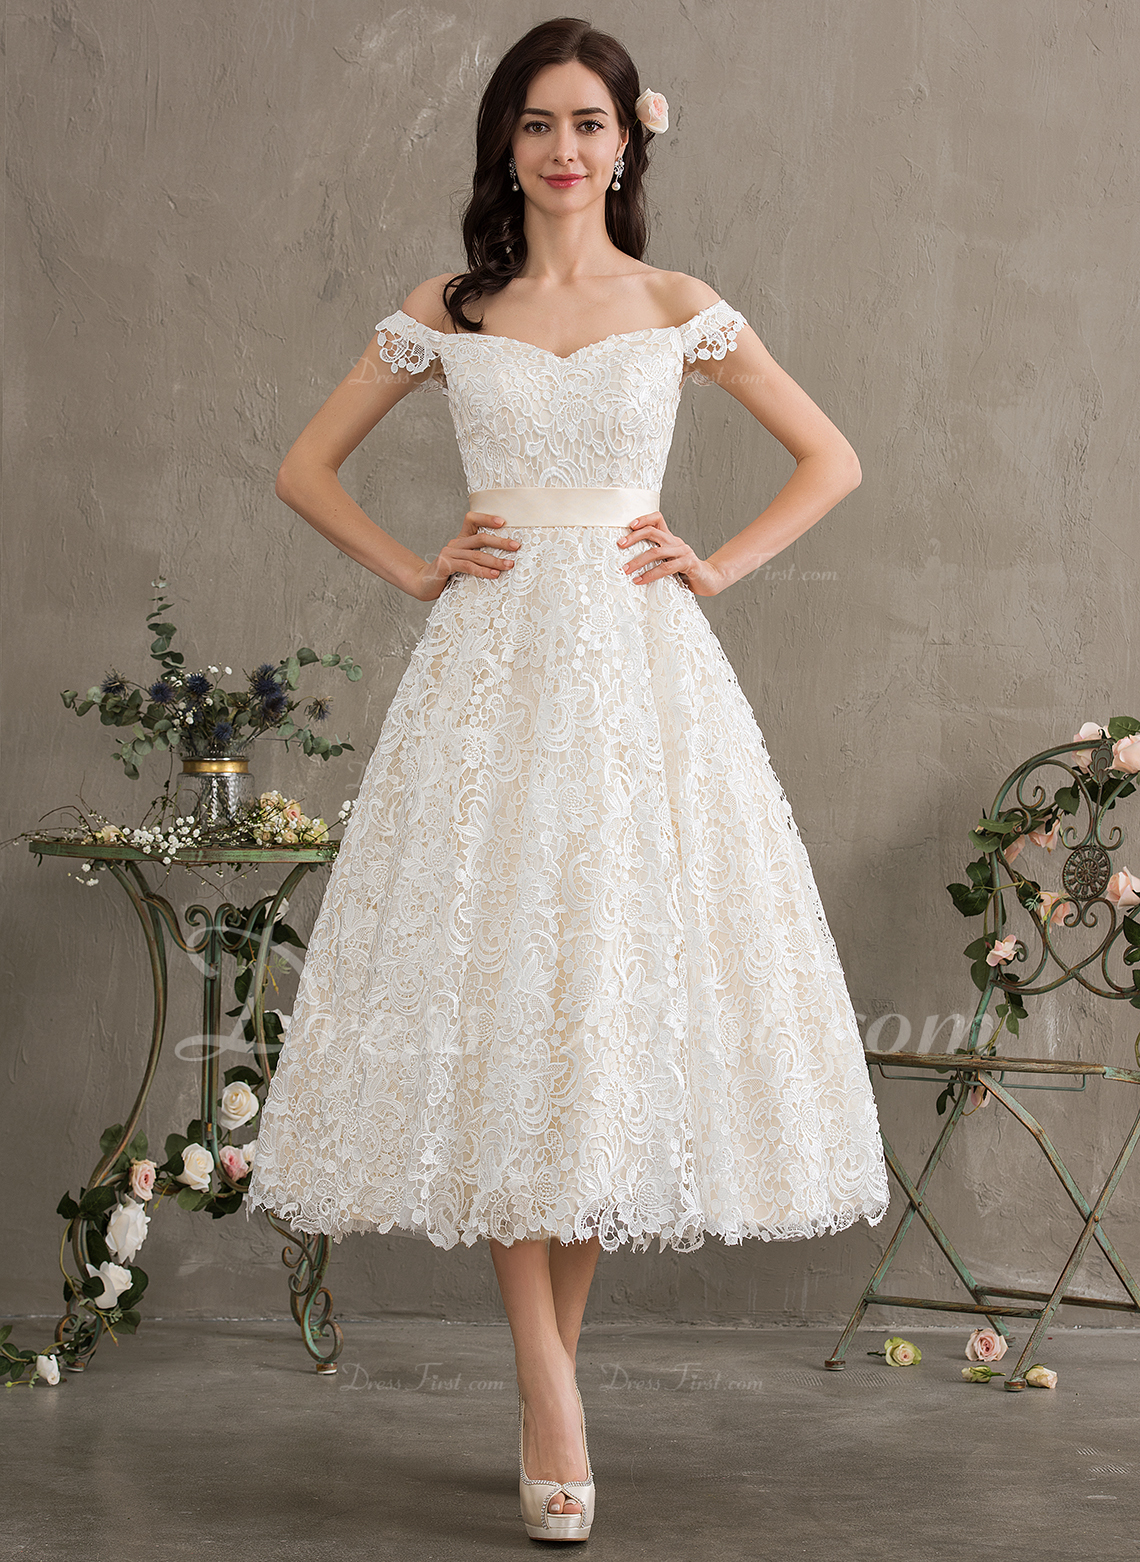 Us 20199 Ball Gownprincess Off The Shoulder Tea Length Lace Wedding Dress With Bows Jjshouse